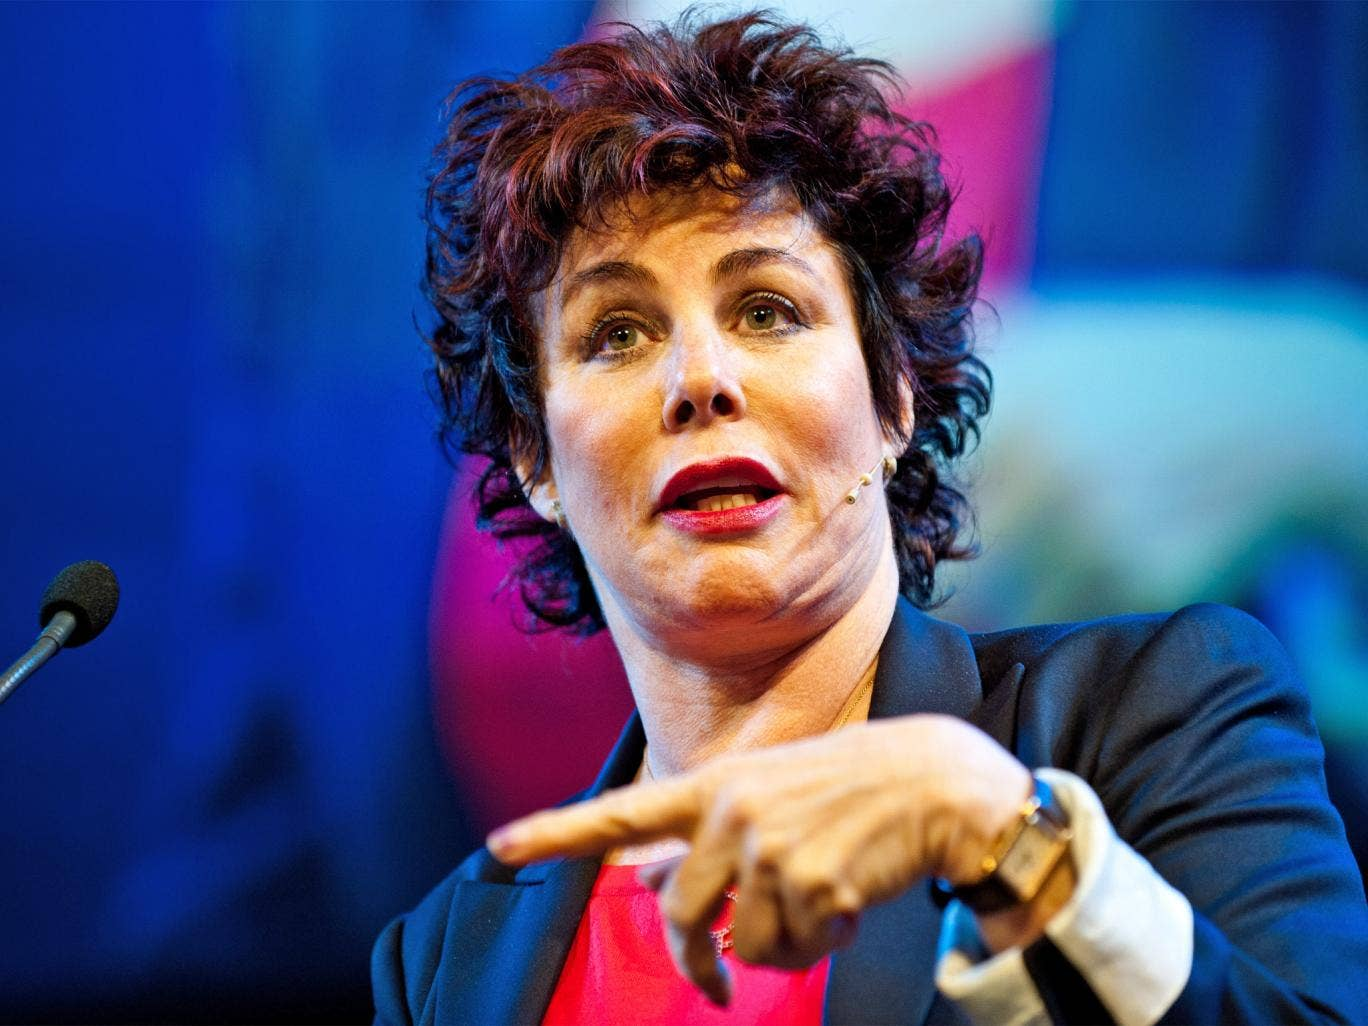 Comedian Ruby Wax has talked openly about her depression